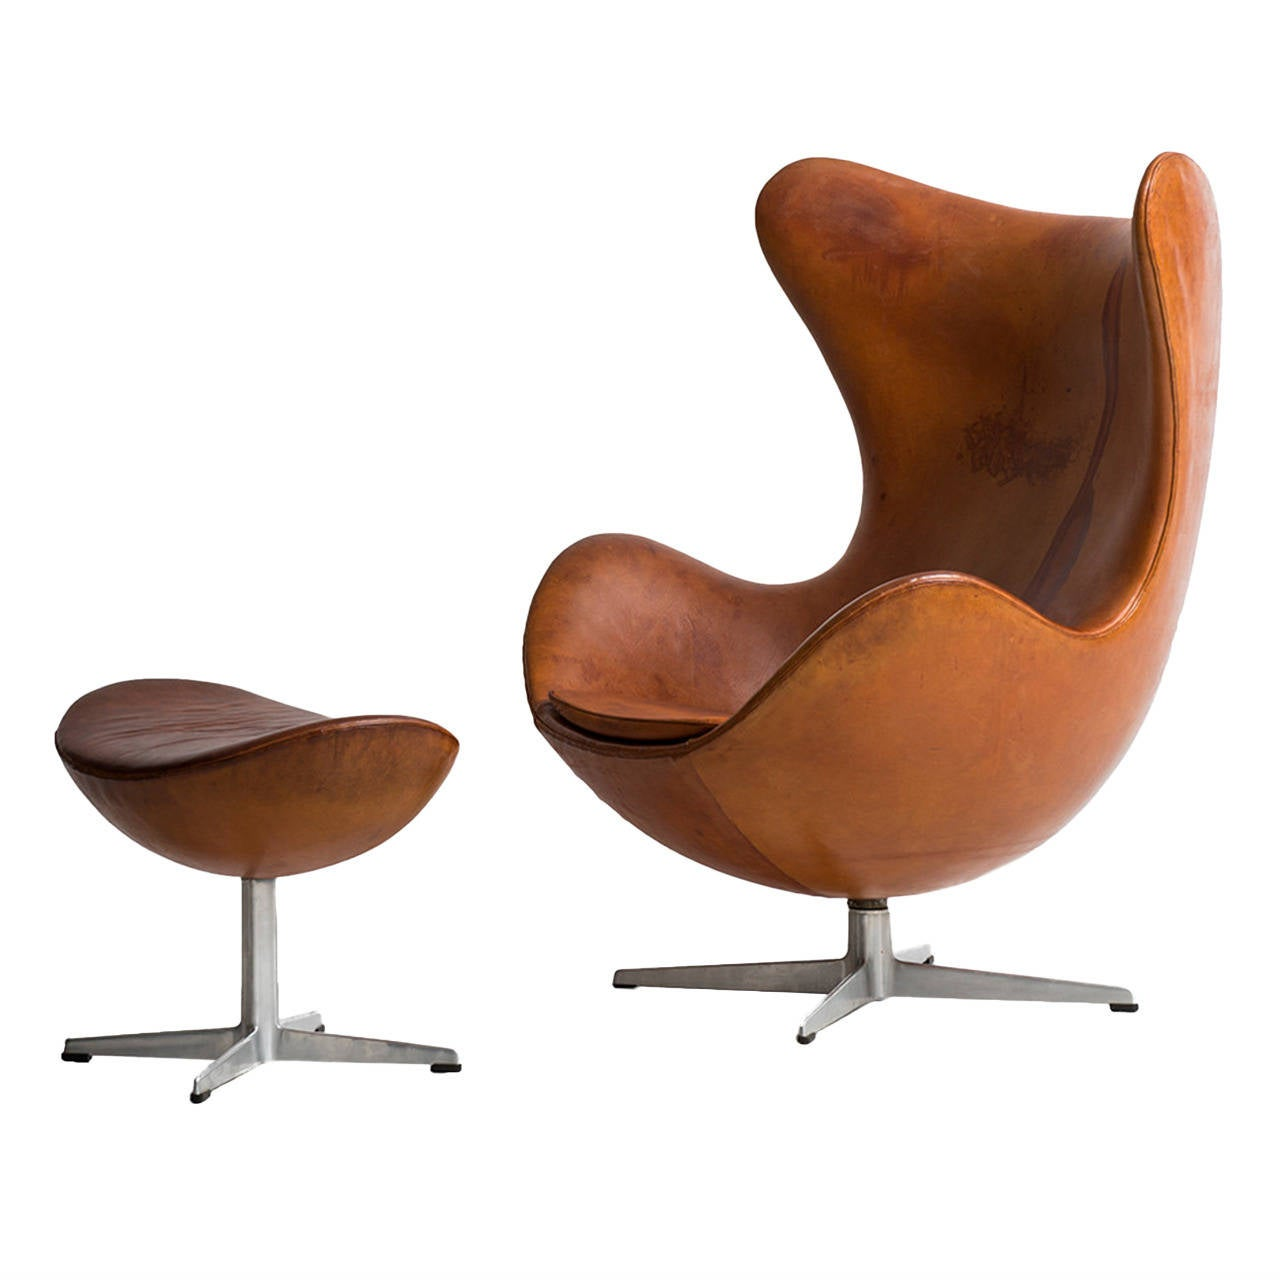 Arne Jacobsen Egg Chair Ebay Patina Aluminum Autos Post